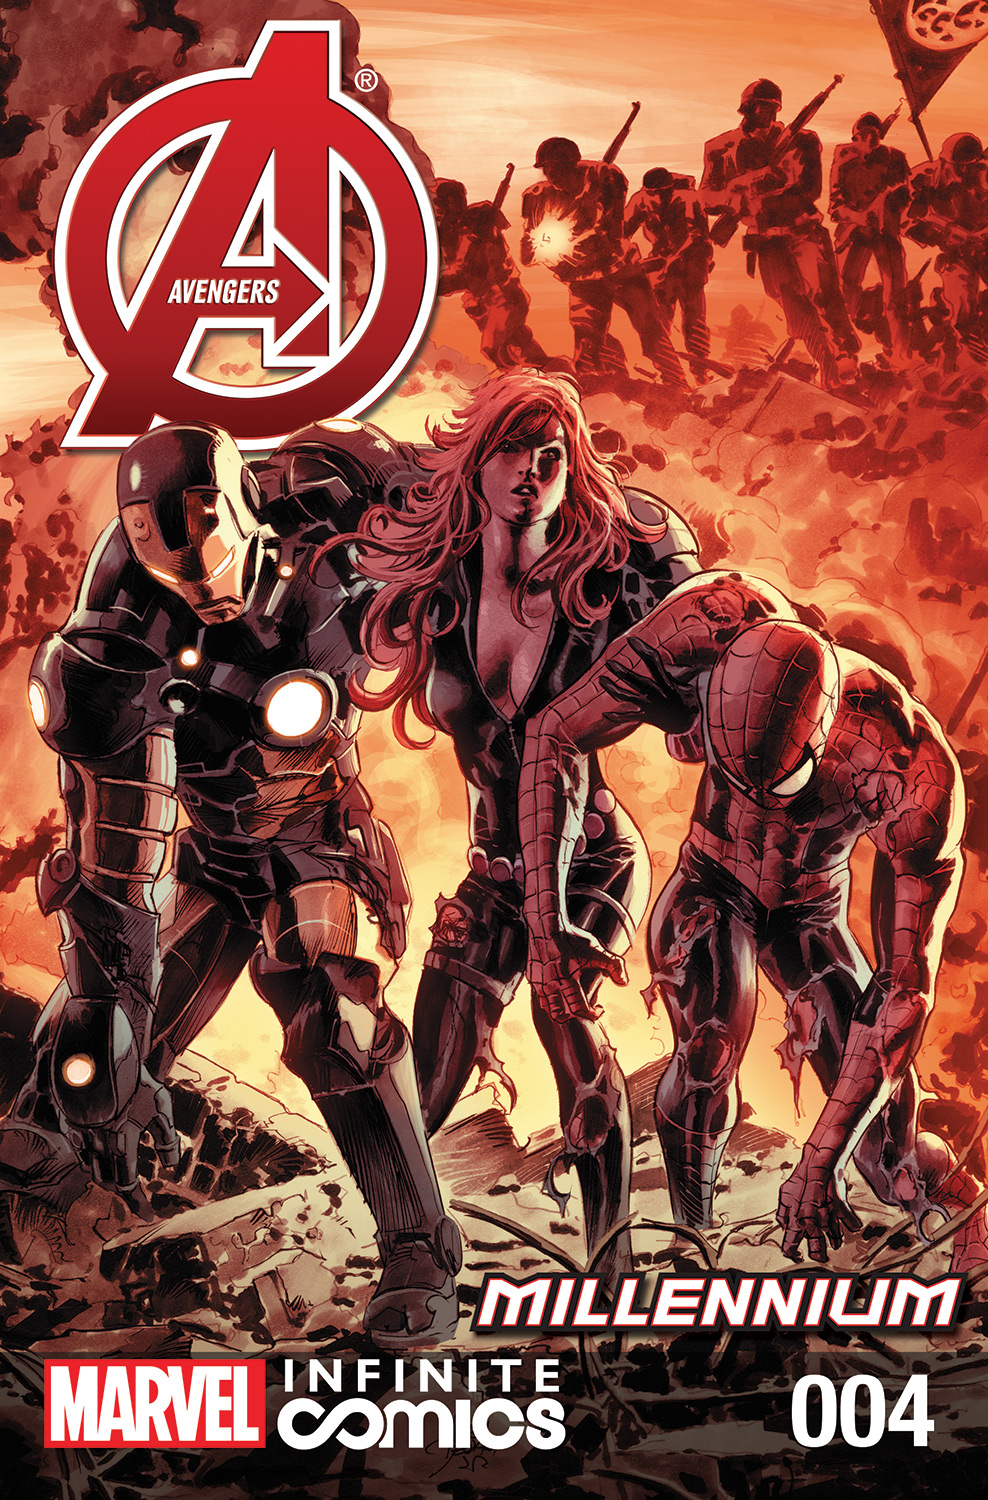 Avengers: Millennium Infinite Comic Vol 1 4